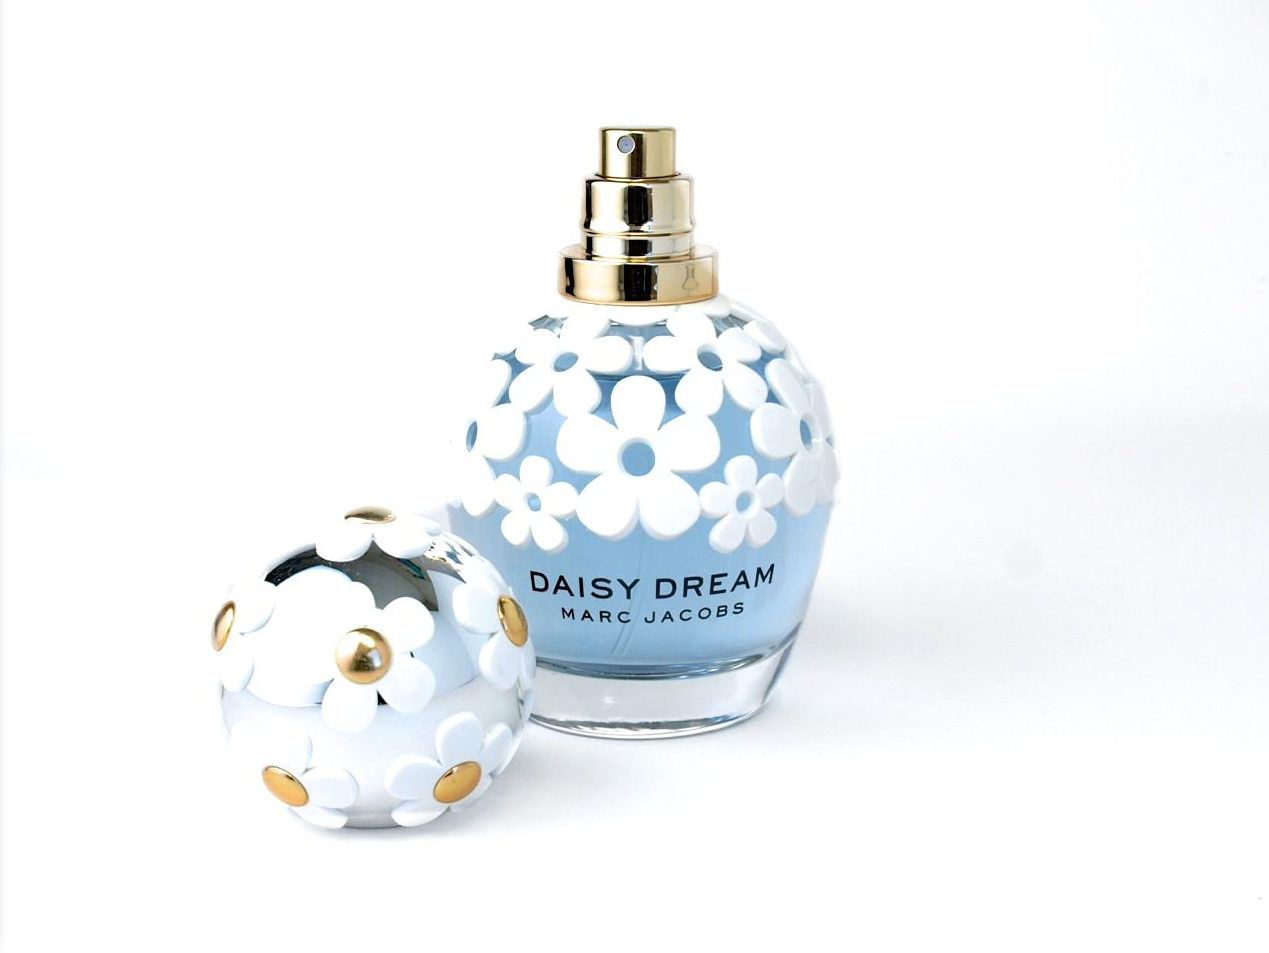 Marc Jacobs Daisy Dream Eau de Toilette: Review